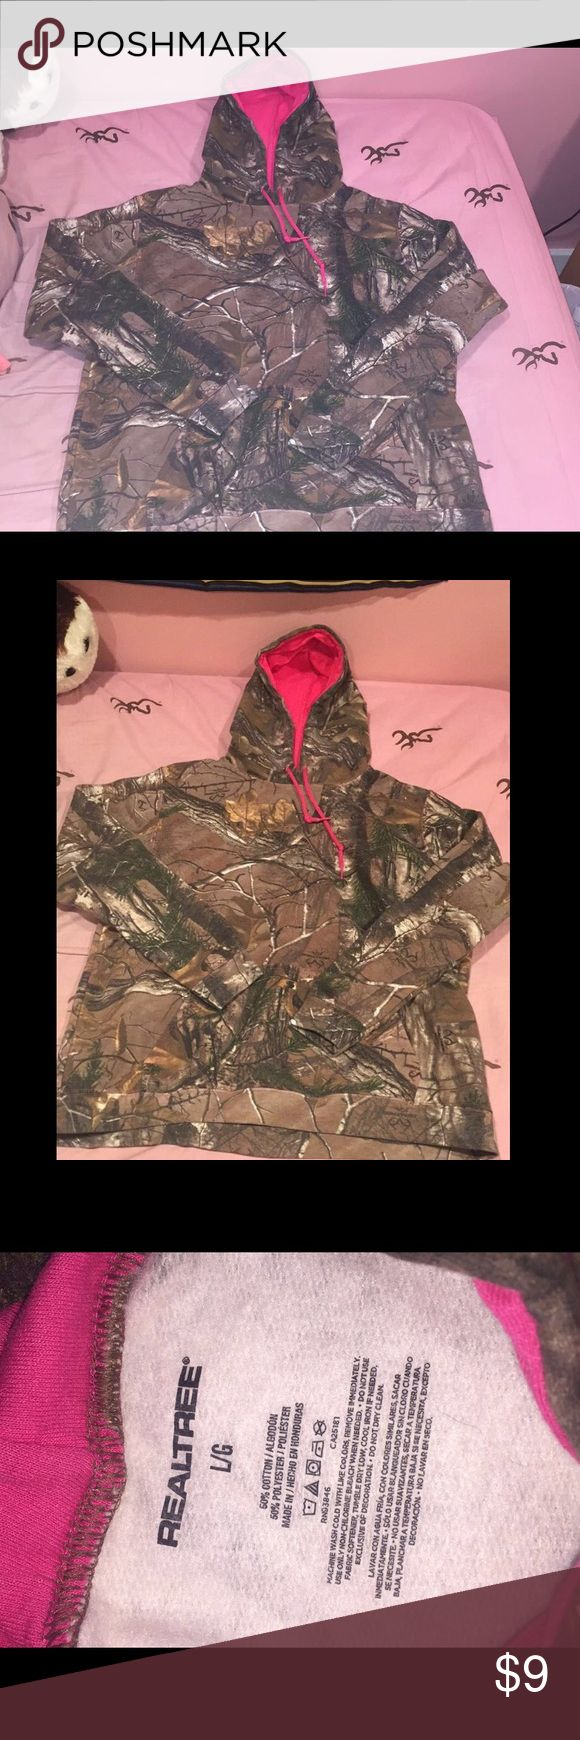 Camo Realtree hoddie Camouflage hoodie,in great condition. Very warm and comfy worn once TAGS: hunt hunting hunter deer redneck country southern realtree Other